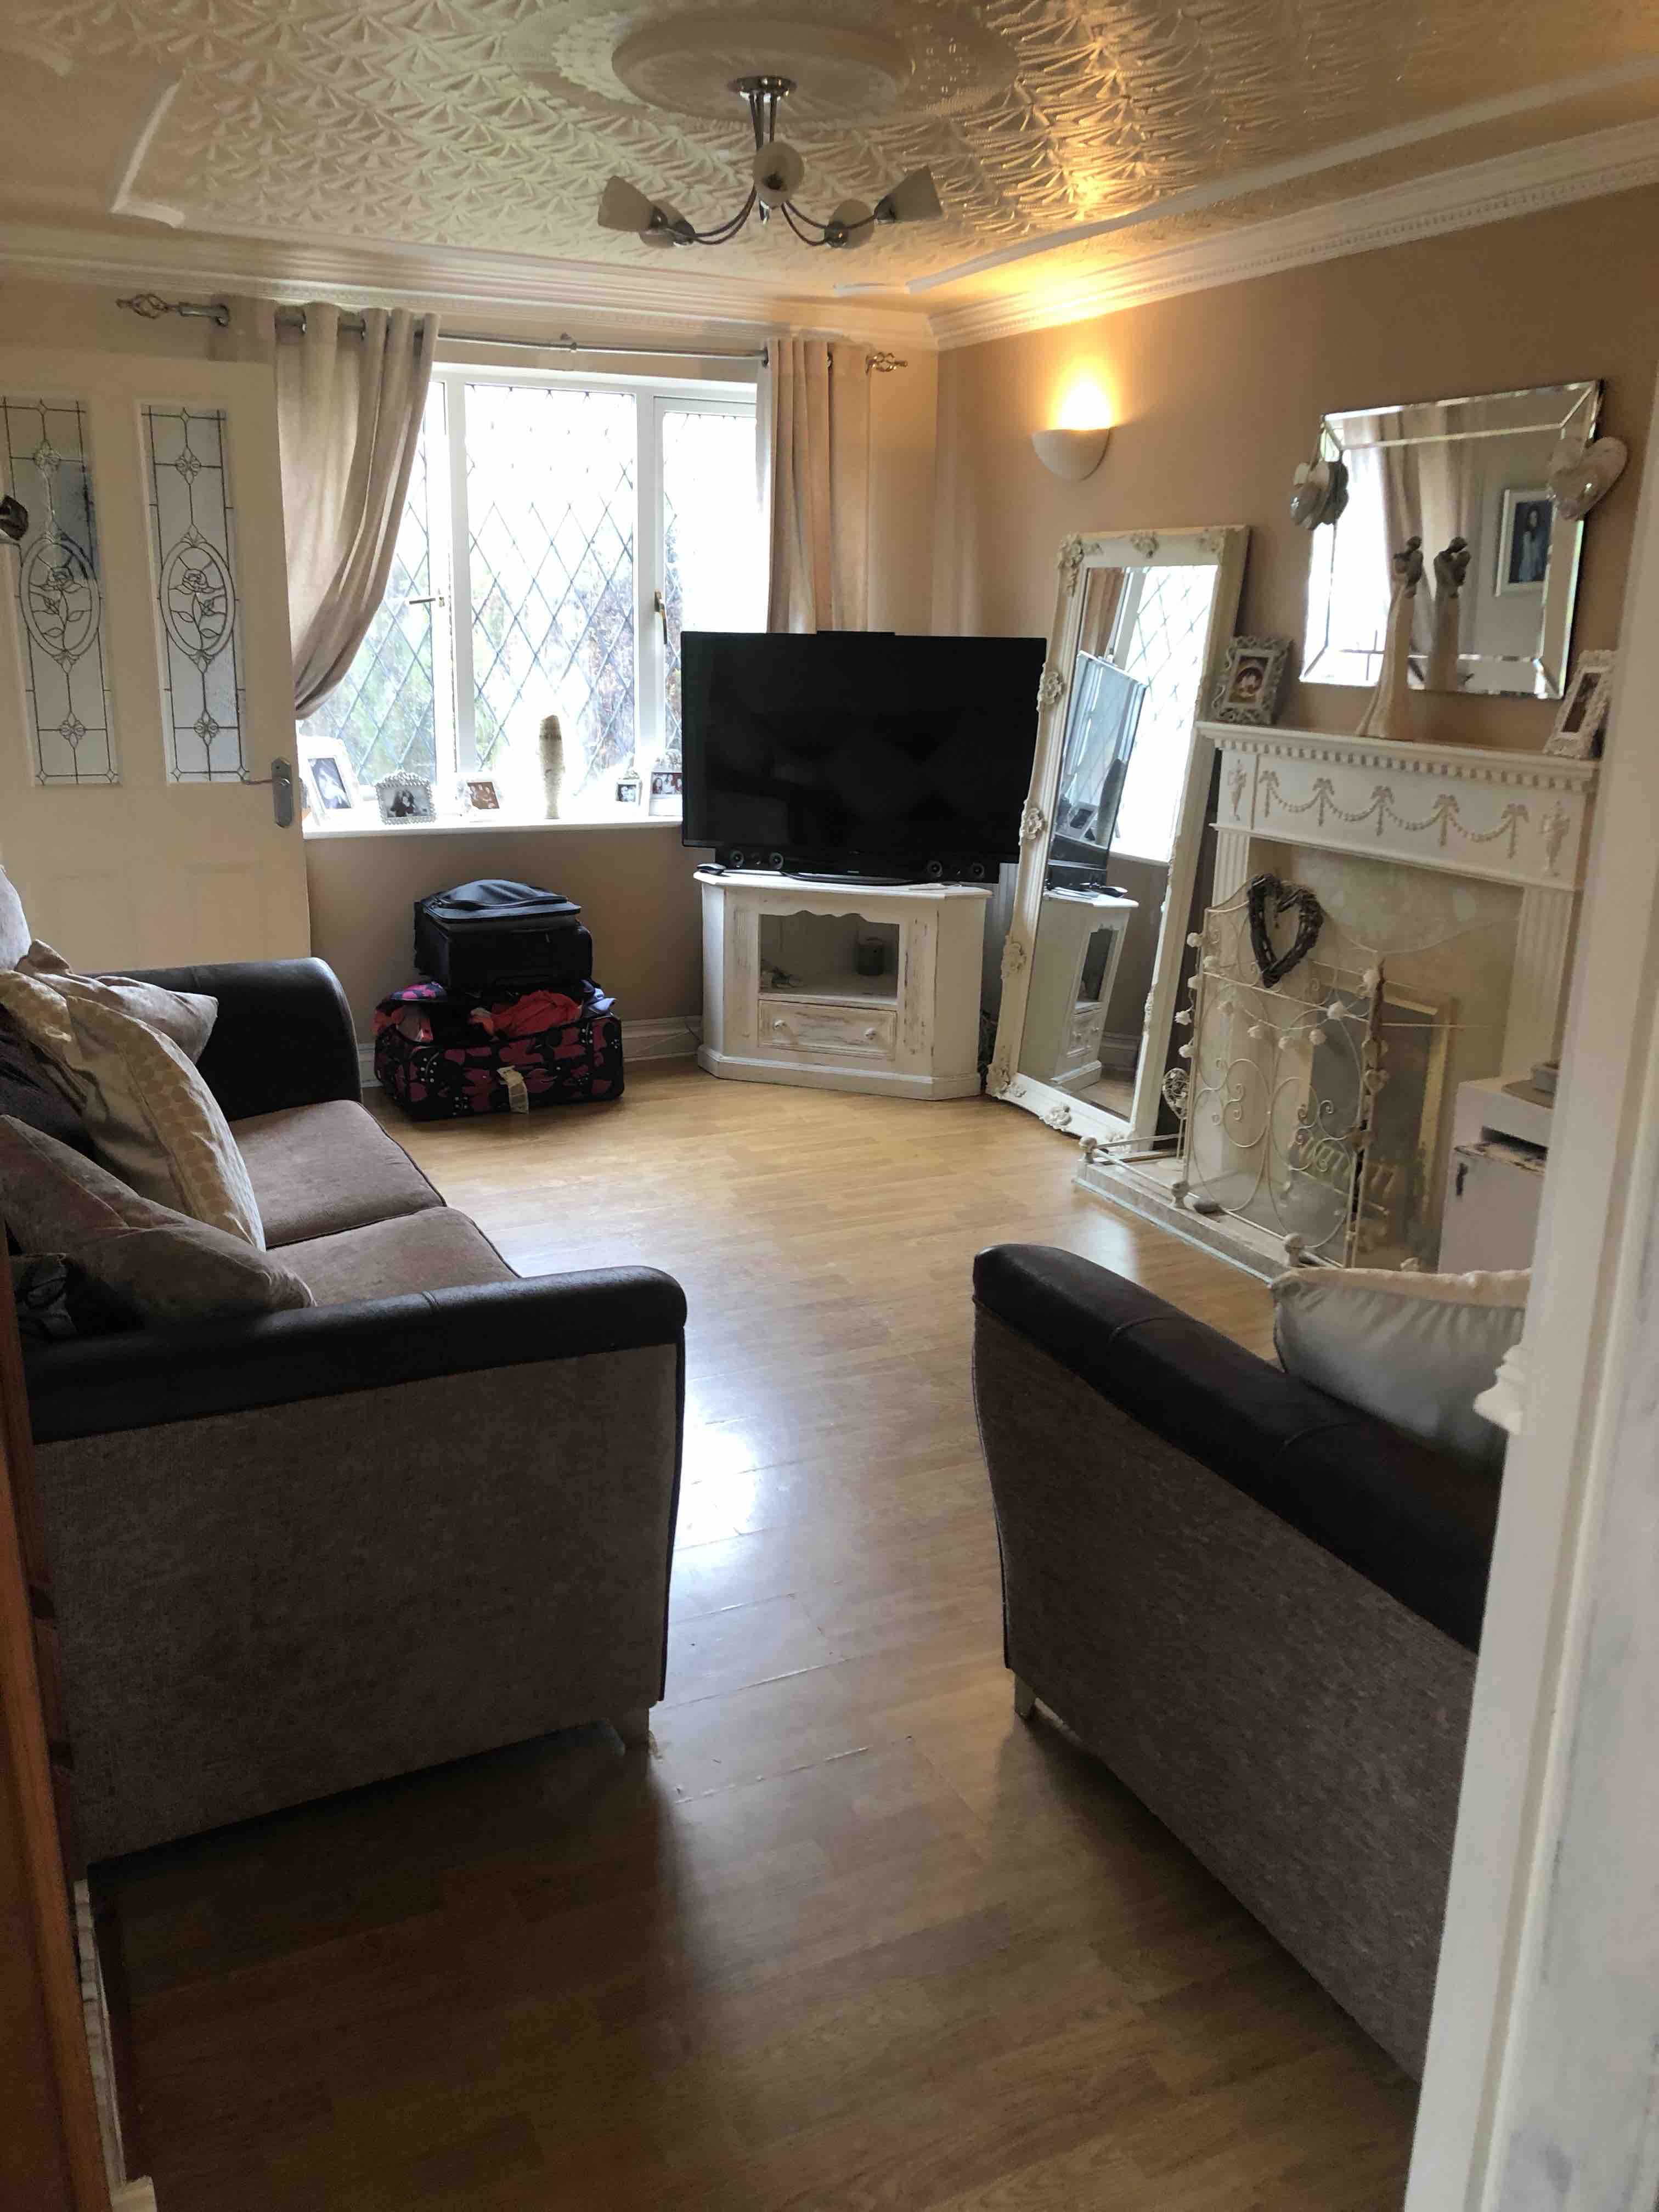 3 rooms in Tettenhall, Wolverhampton, WV6 7XN RoomsLocal image